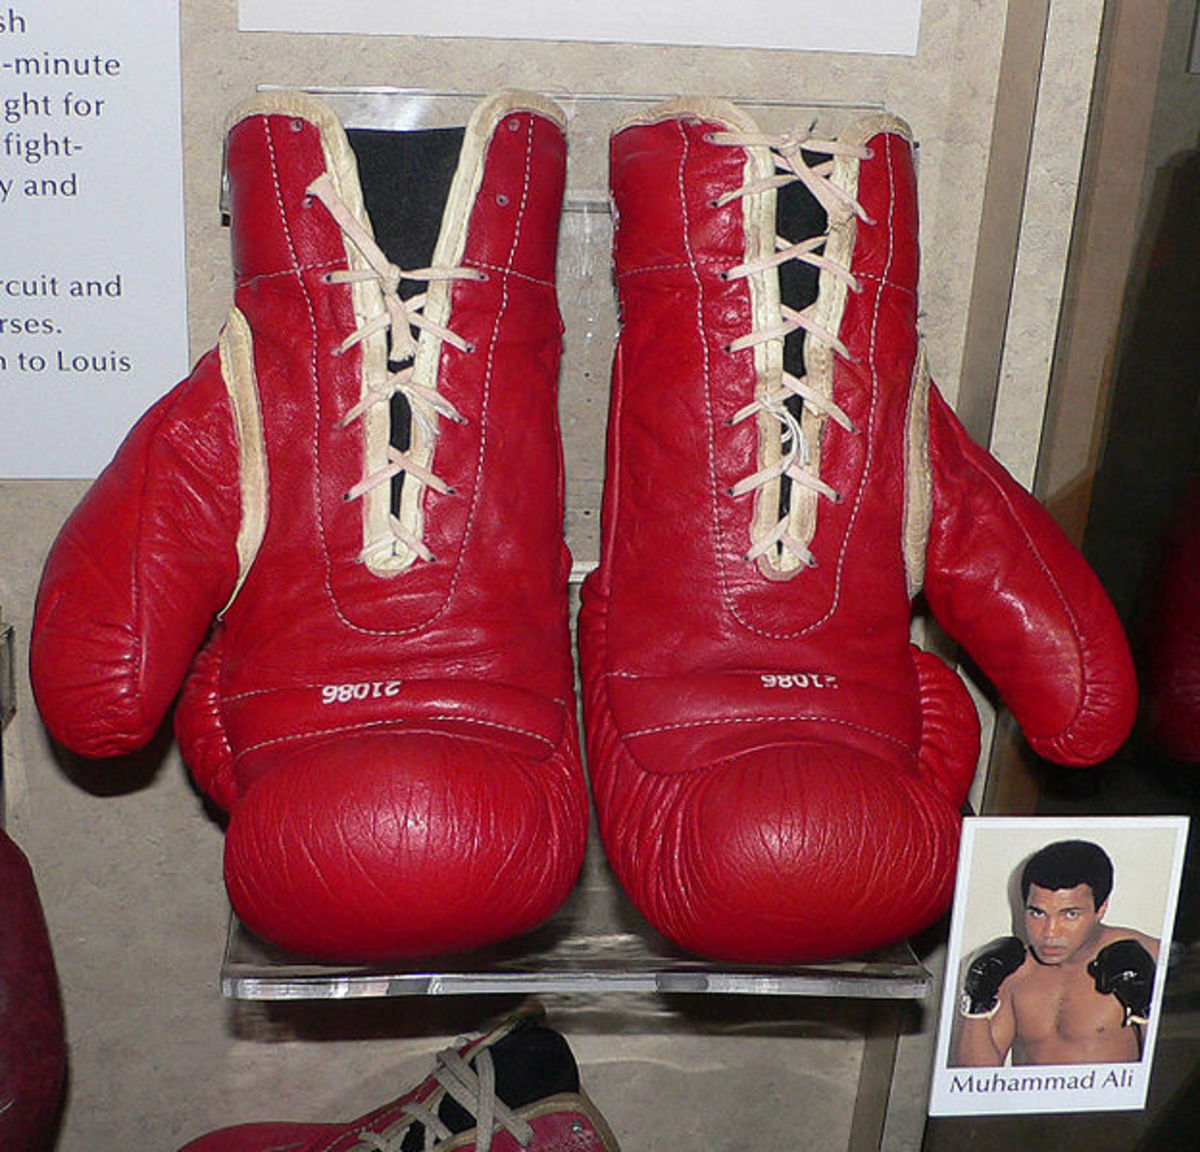 Muhammad Ali's boxing gloves.  Ali is perhaps the most famous and charismatic boxer ever.  The only three-time lineal World Heavyweight Champion, he was diagnosed with Parkinson's syndrome in 1984, a disease associated with head trauma and boxing.